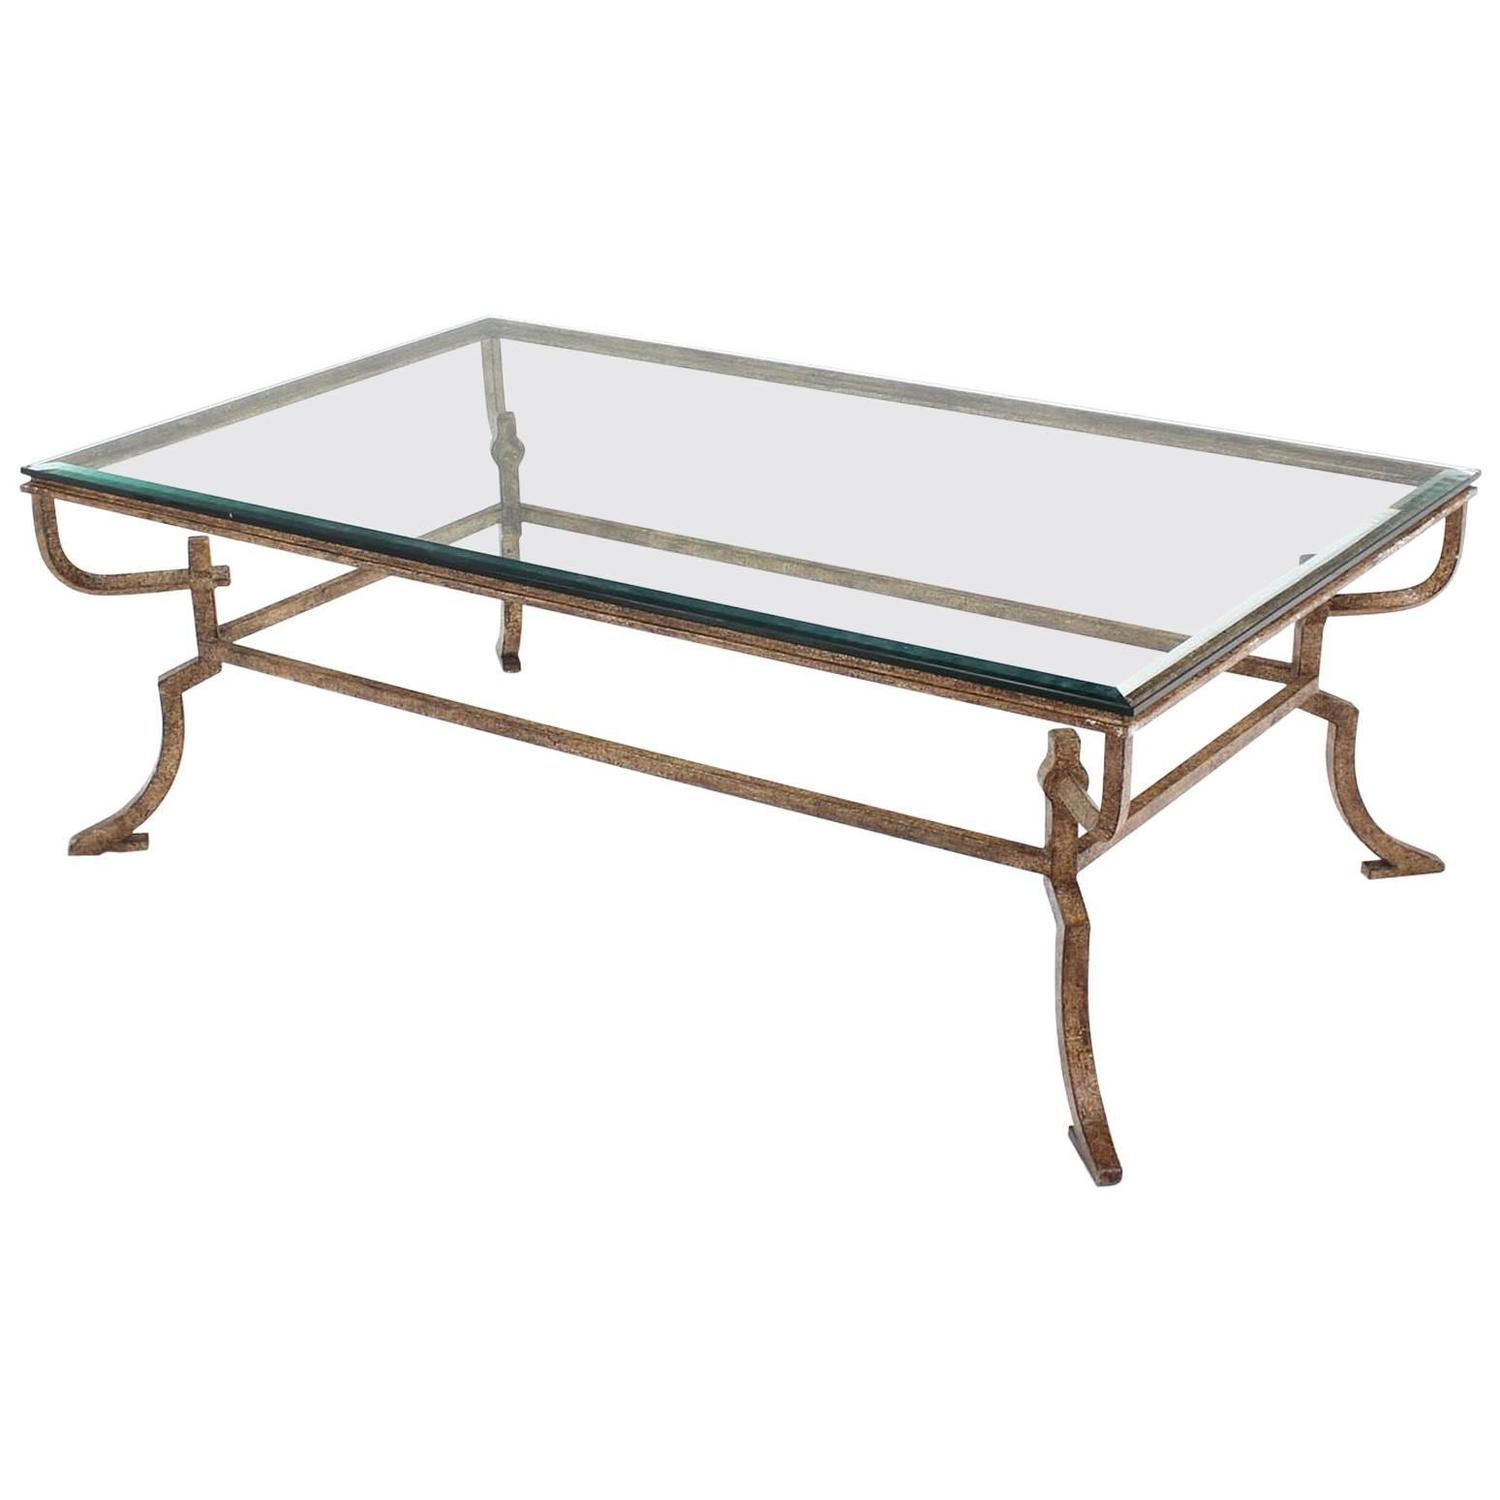 Heavy wrought iron studio work base glass top coffee table for sale at 1stdibs Glass coffee table base